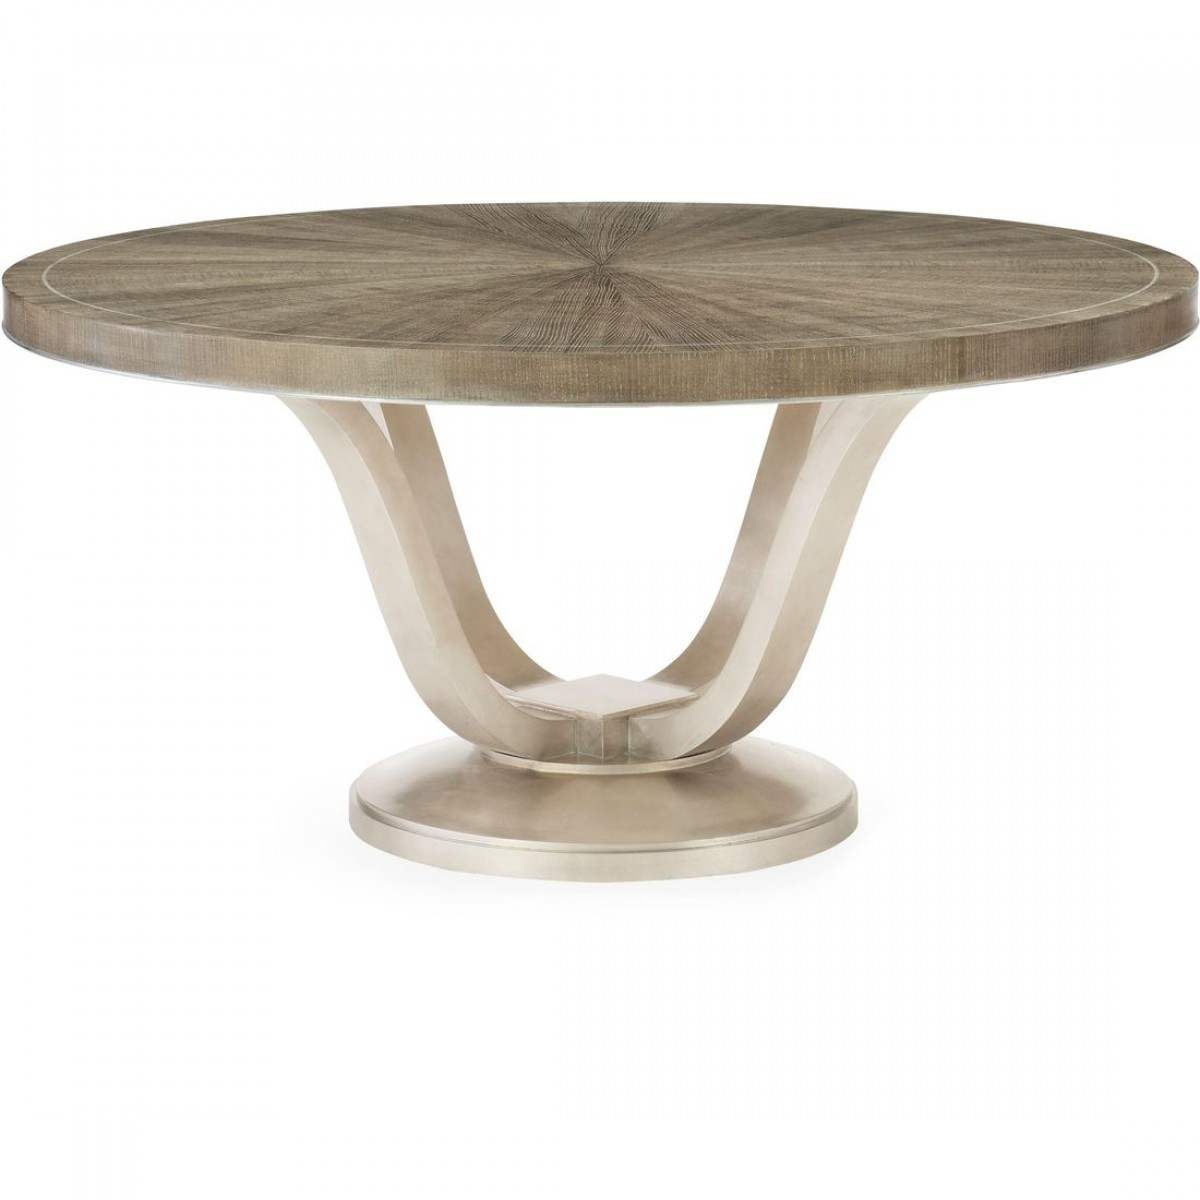 Caracole Avondale Round Dining Table Within Current Avondale Dining Tables (View 9 of 25)